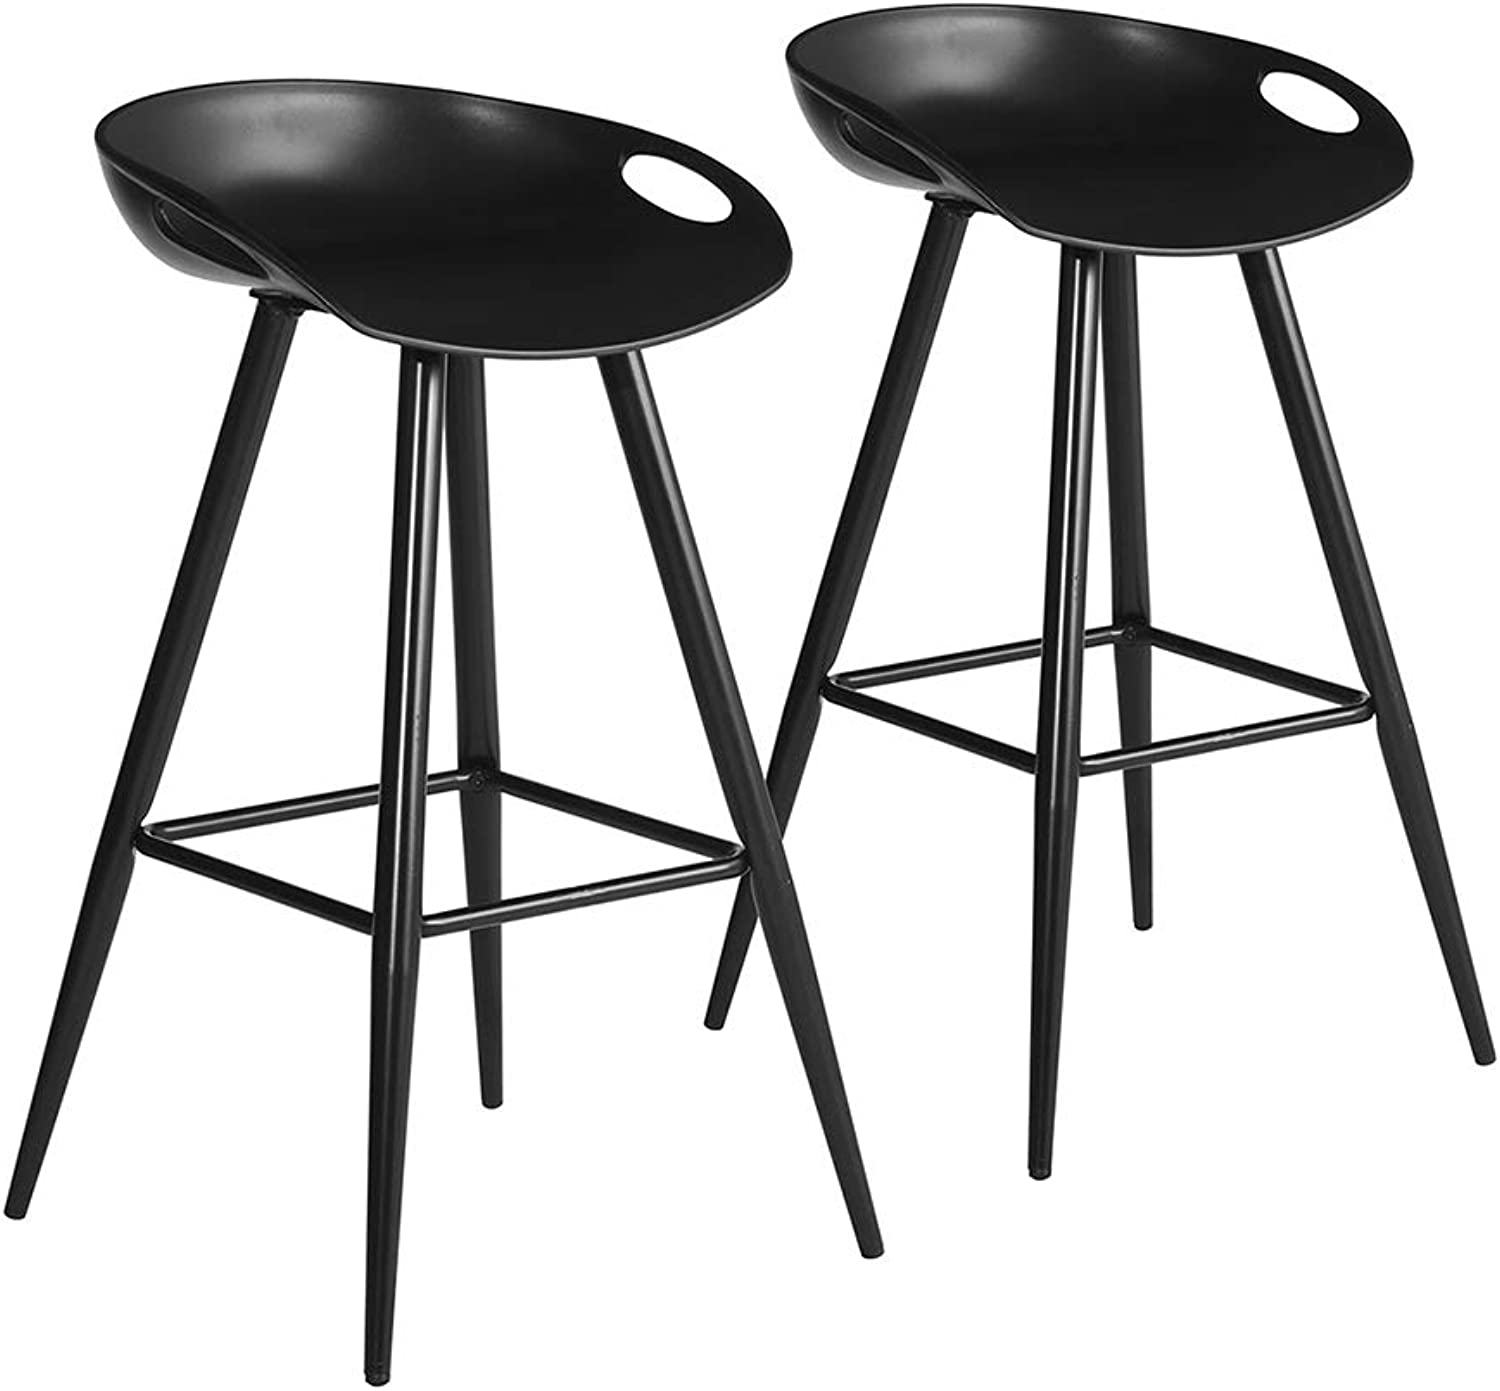 HOMY CASA Barstools Set of 2 Patio Counter Height Chair PP Seat with Metal Legs for Home Bar, Pub (Black Legs)